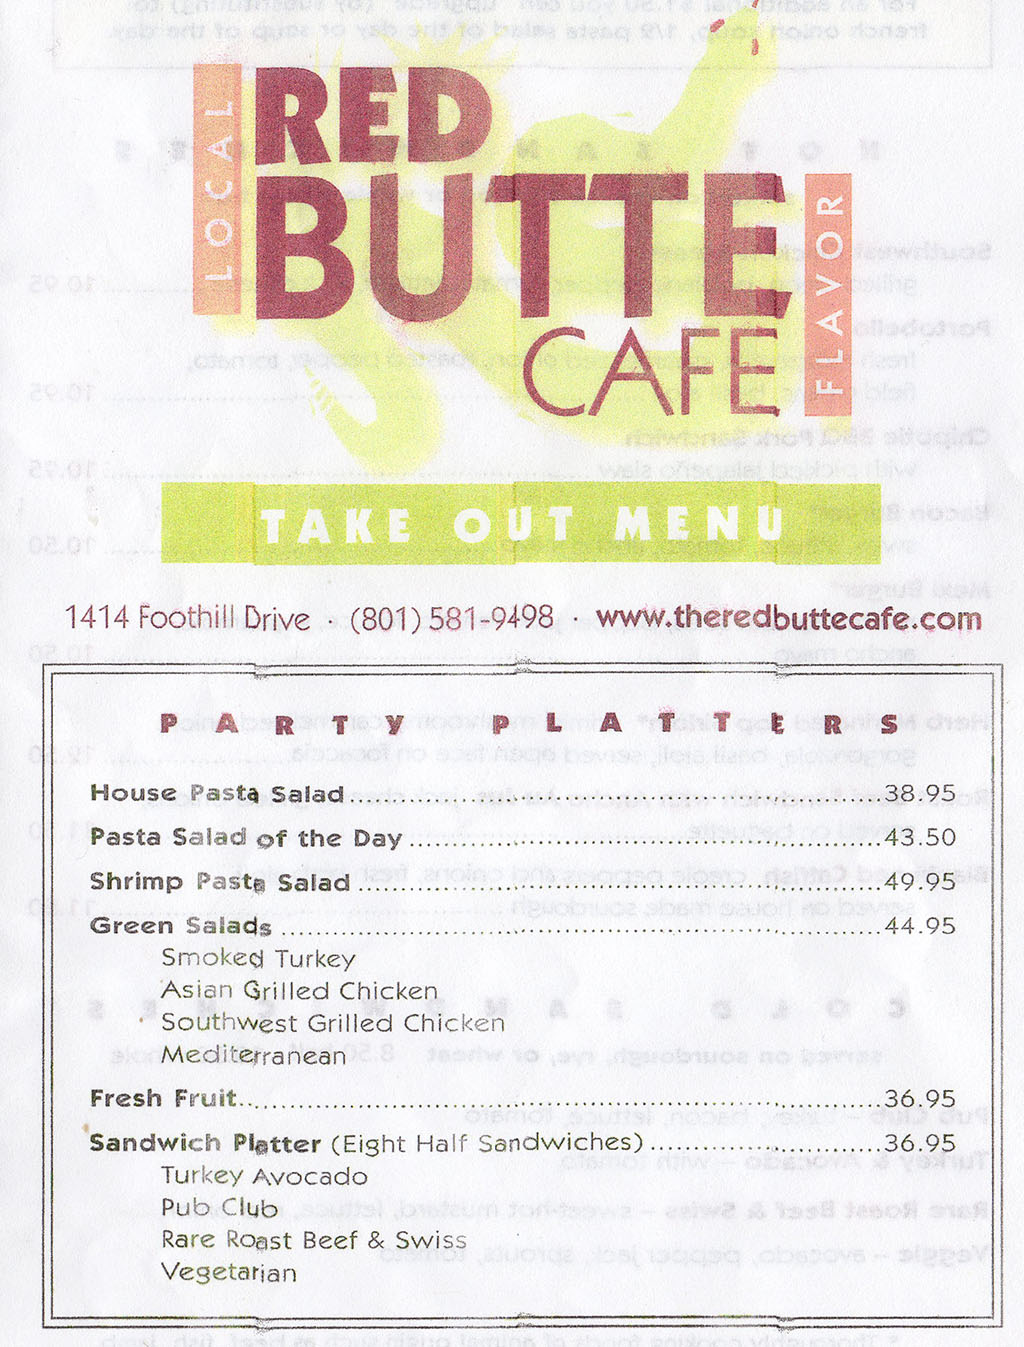 Red Butte Cafe menu - party platters